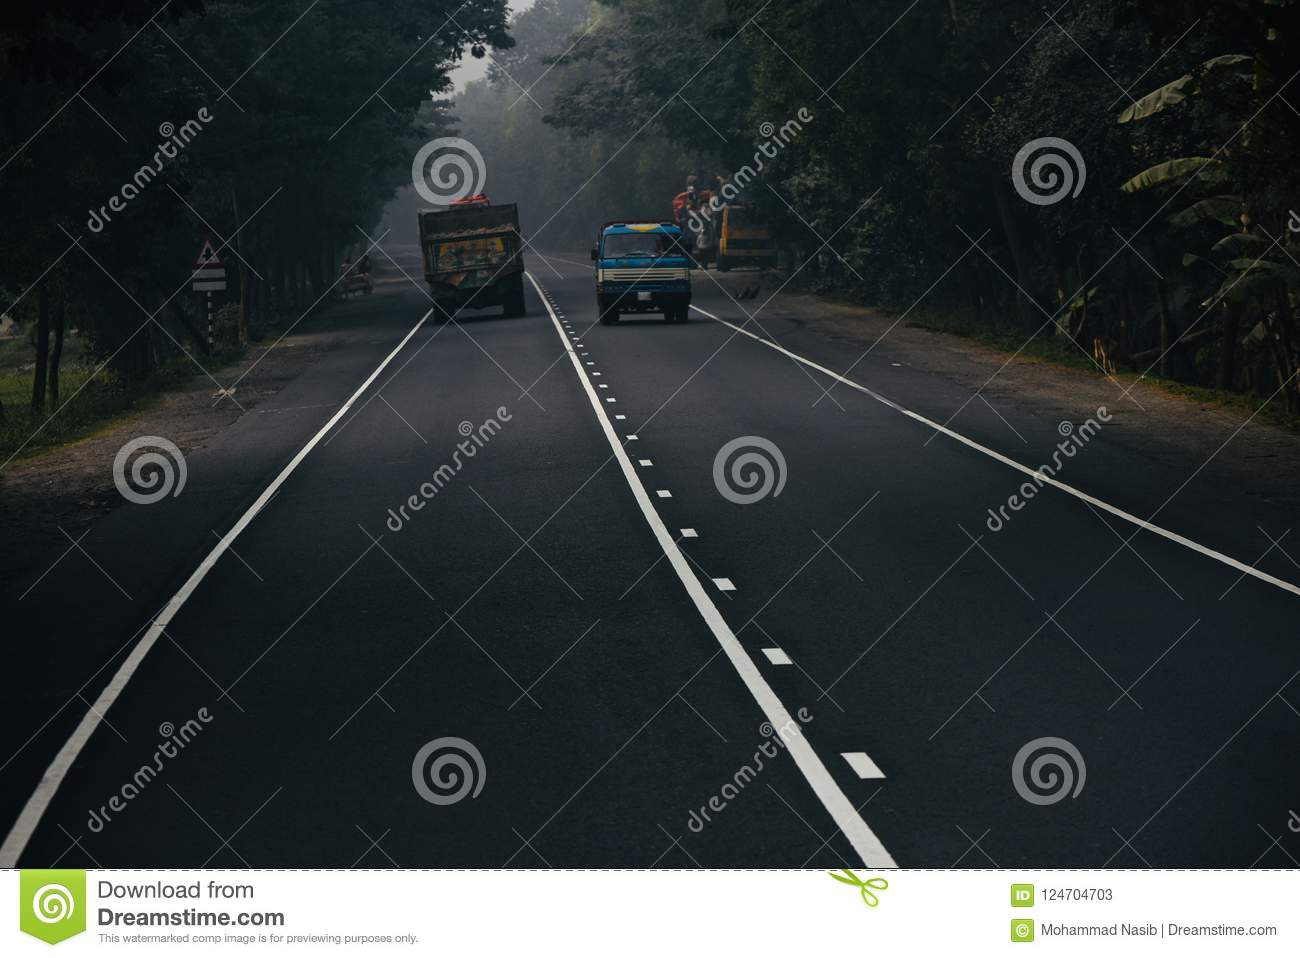 Download Running Trucks On The Street In Bangladesh In The Morning Stock Image - Image of abstract, photo: 124704703